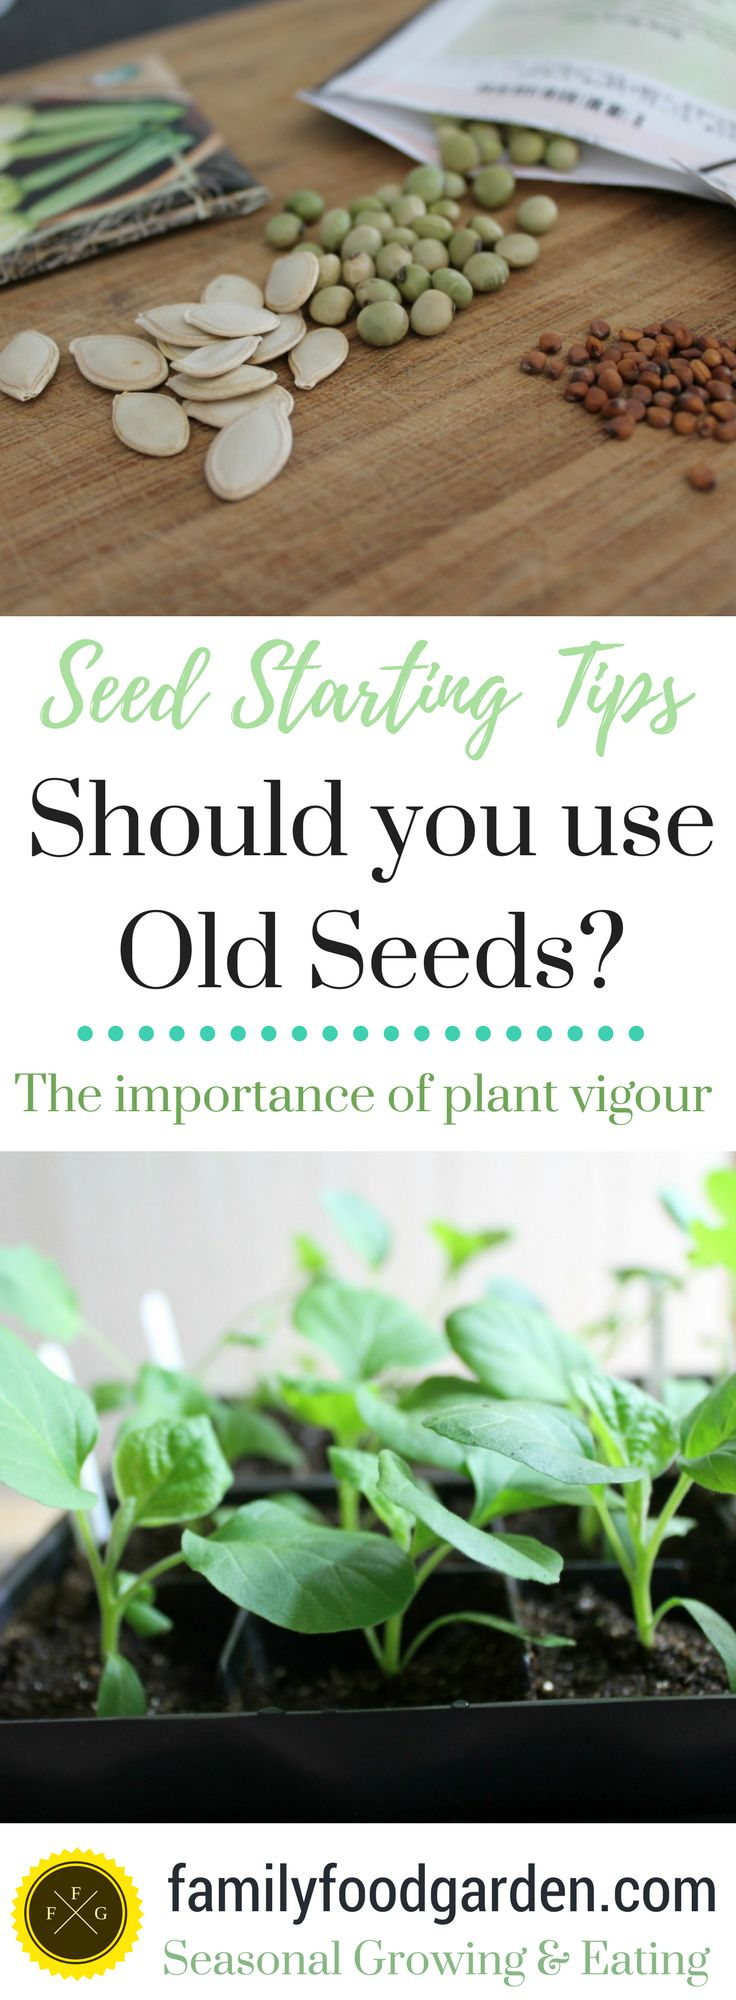 This time of the year I see lots of seed starting tricks. One seed starting tip is pre-germinating your seeds before planting them into pots. Another is pre-germinating your old seeds so you're not wasting them. Now I'm a big fan of not wasting anything, however I'm also a gardener that focuses o